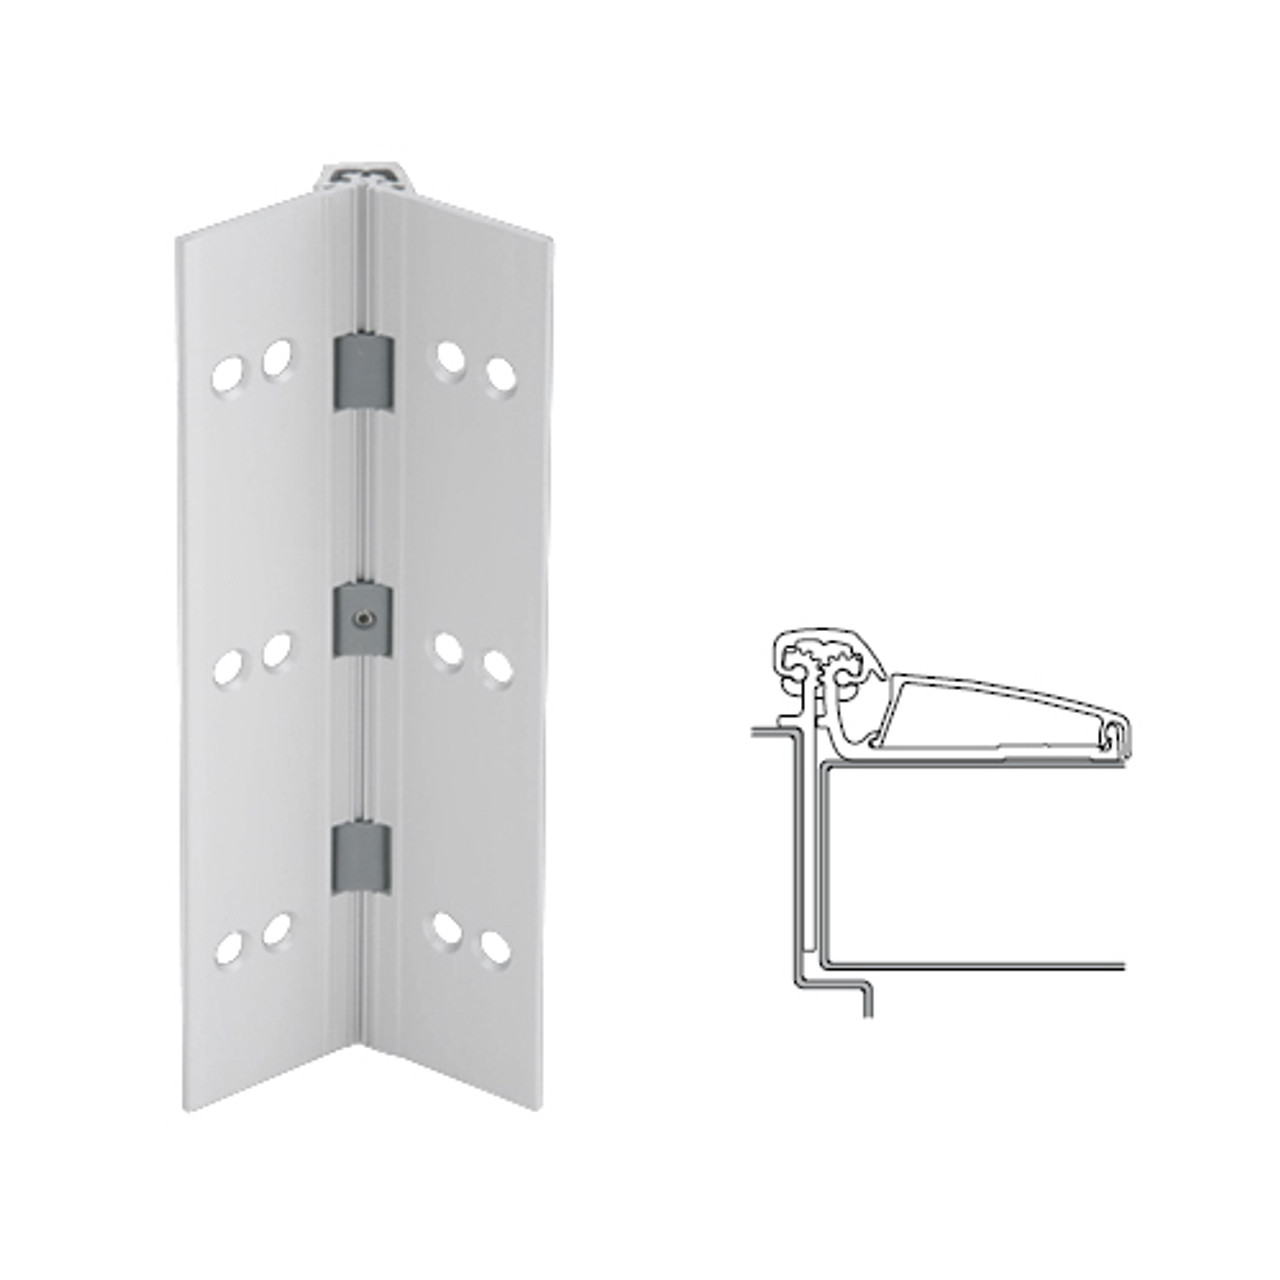 046XY-US28-83-TEKWD IVES Adjustable Half Surface Continuous Geared Hinges with Wood Screws in Satin Aluminum